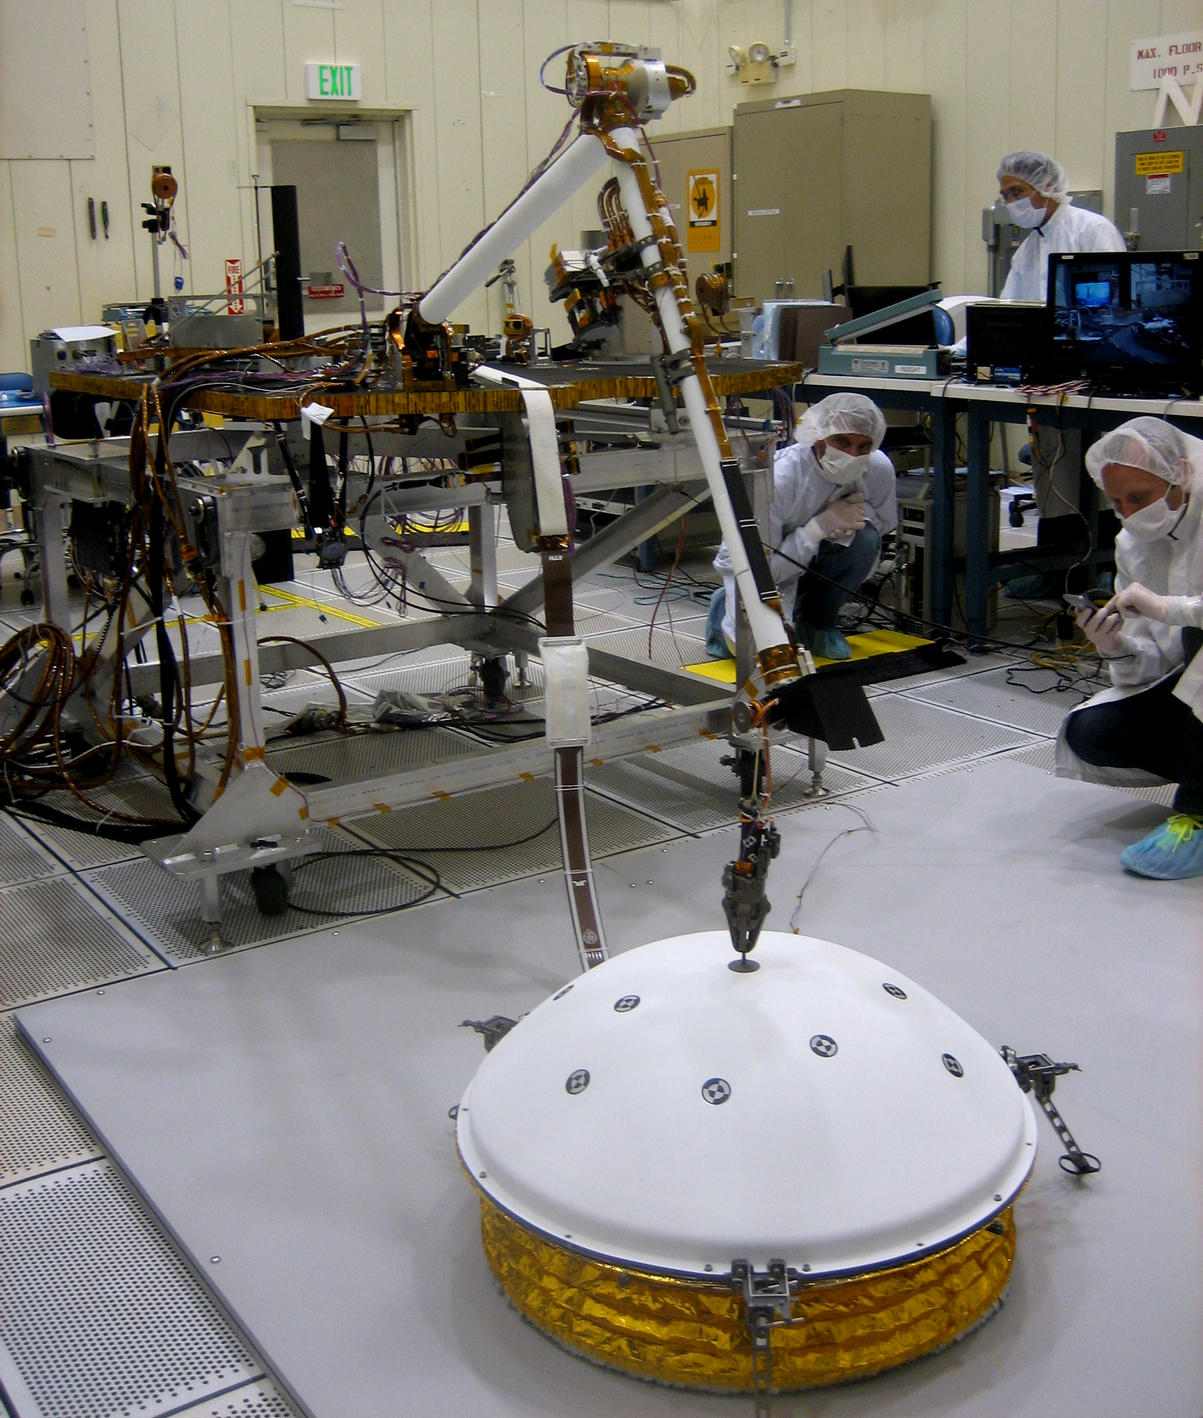 This image shows testing of InSight's robotic arm at JPL about two years before it will perform these tasks on Mars.